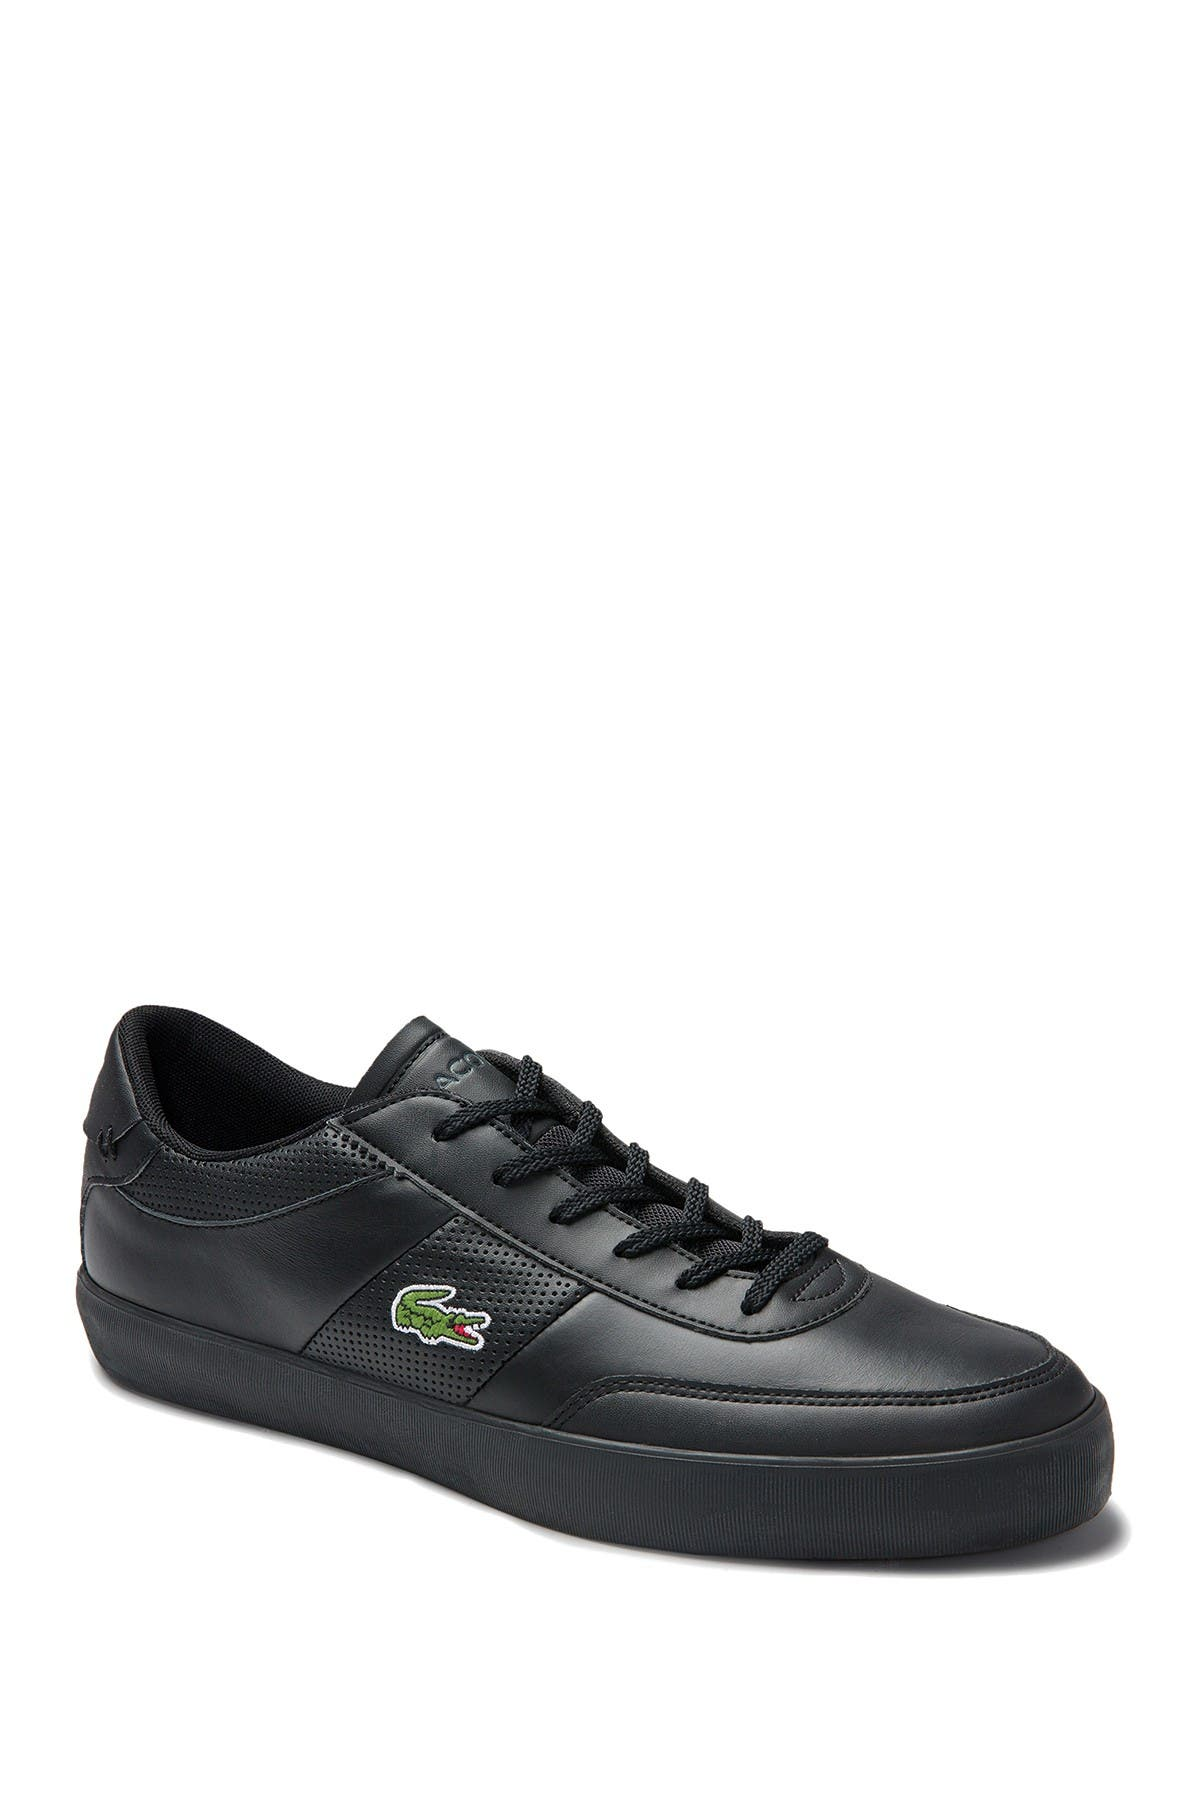 Lacoste Court Master Perf Stripe Sneakers In Black In 02h Blk/blk